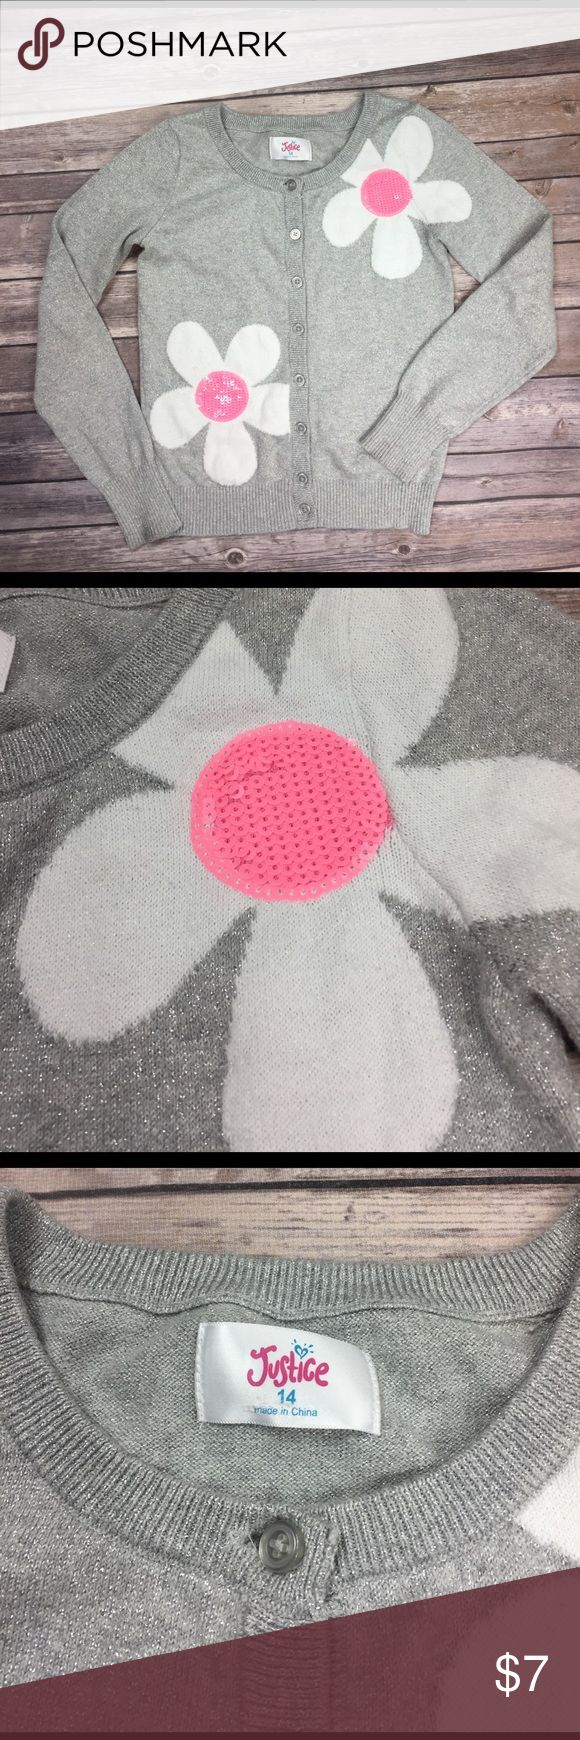 💜Size 14 Justice sweater cardigan GUC, sparkly silver cardigan with pink and white daisies.  🛍 buy 2+ items and get 25% off your purchase automatically!! 🛍 Justice Shirts & Tops Sweaters